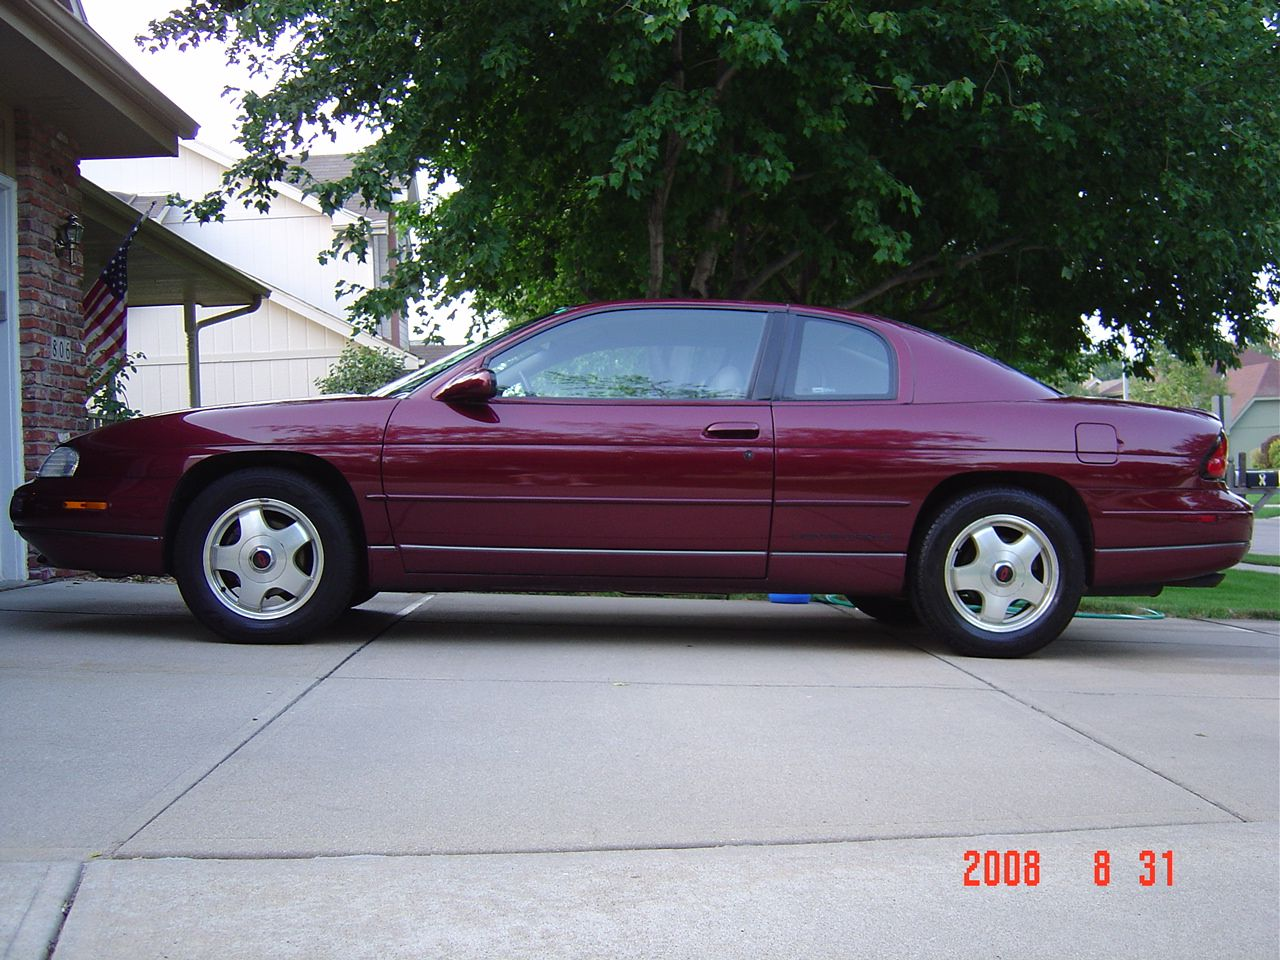 All Chevy 1999 chevrolet monte carlo z34 : 12 best 1995-1999 Monte Carlo images on Pinterest | Chevrolet ...